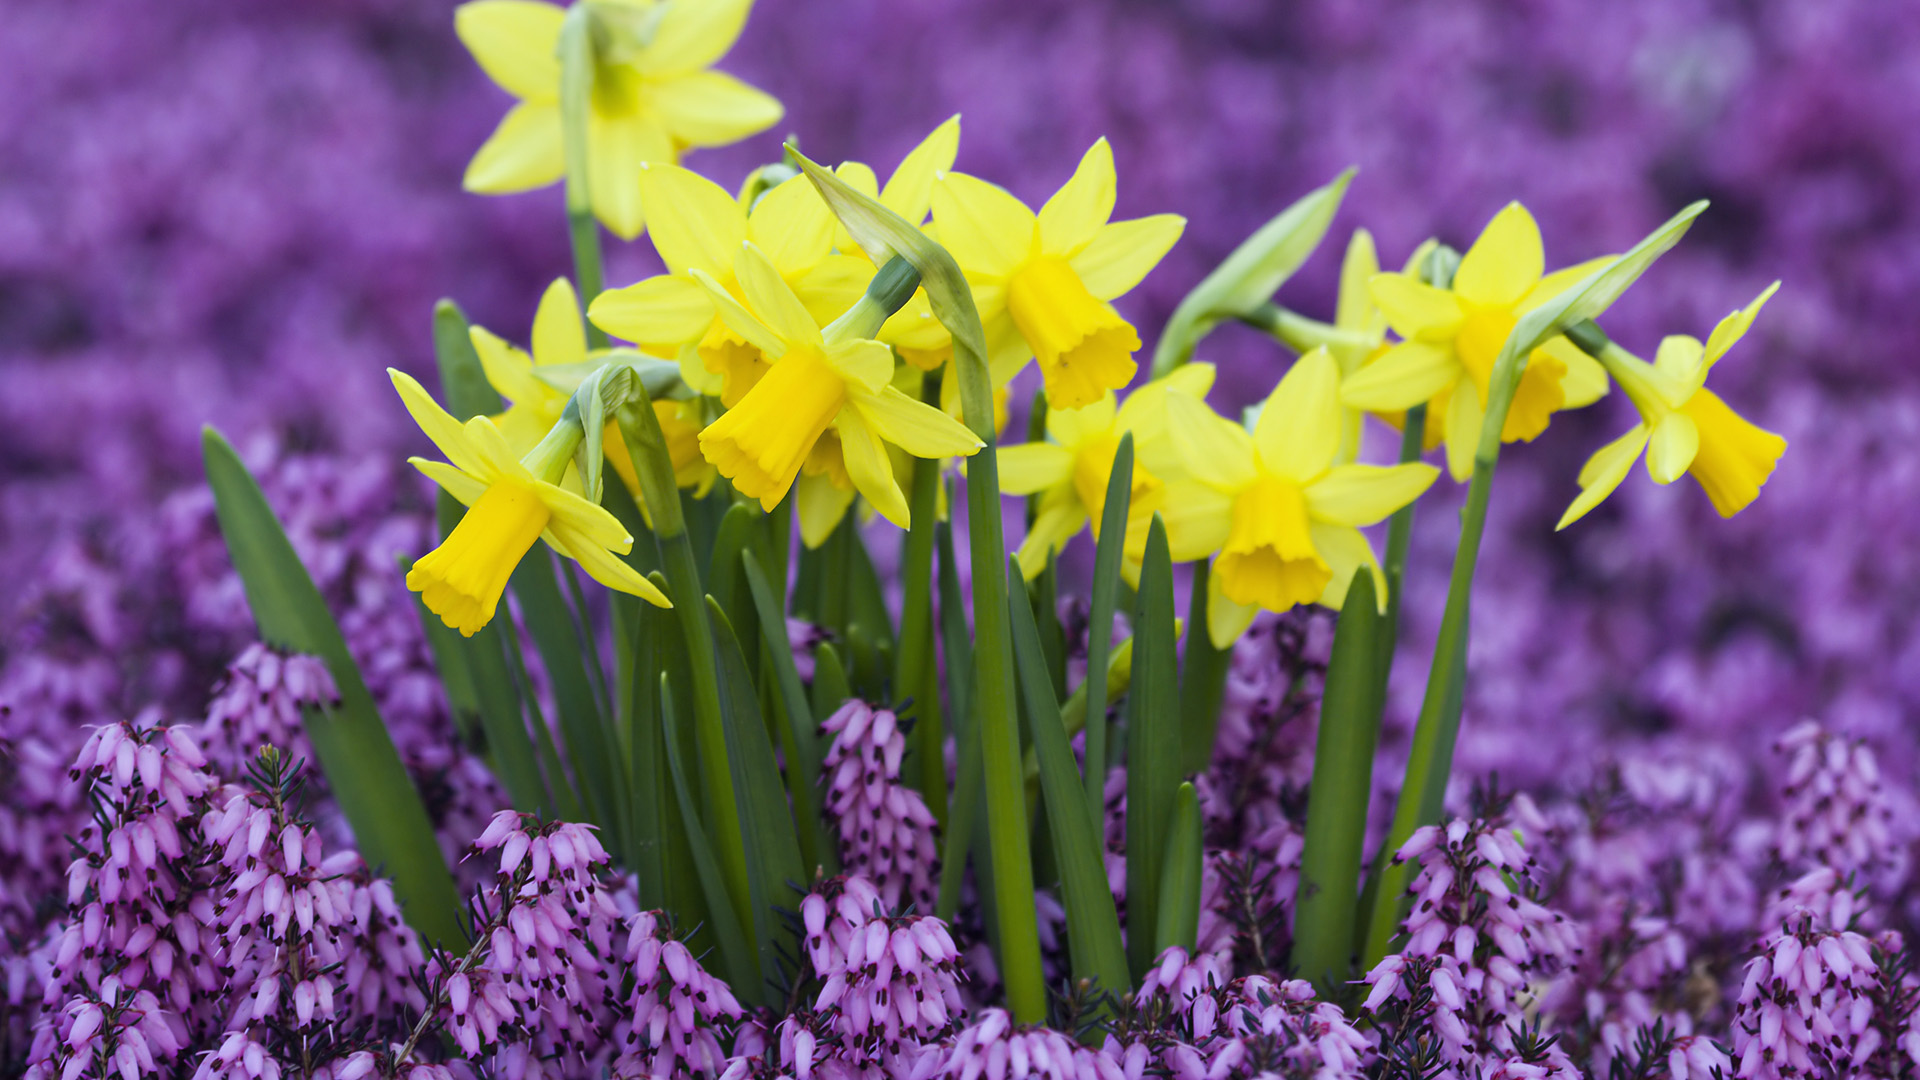 yellow daffodils in purple heather germany